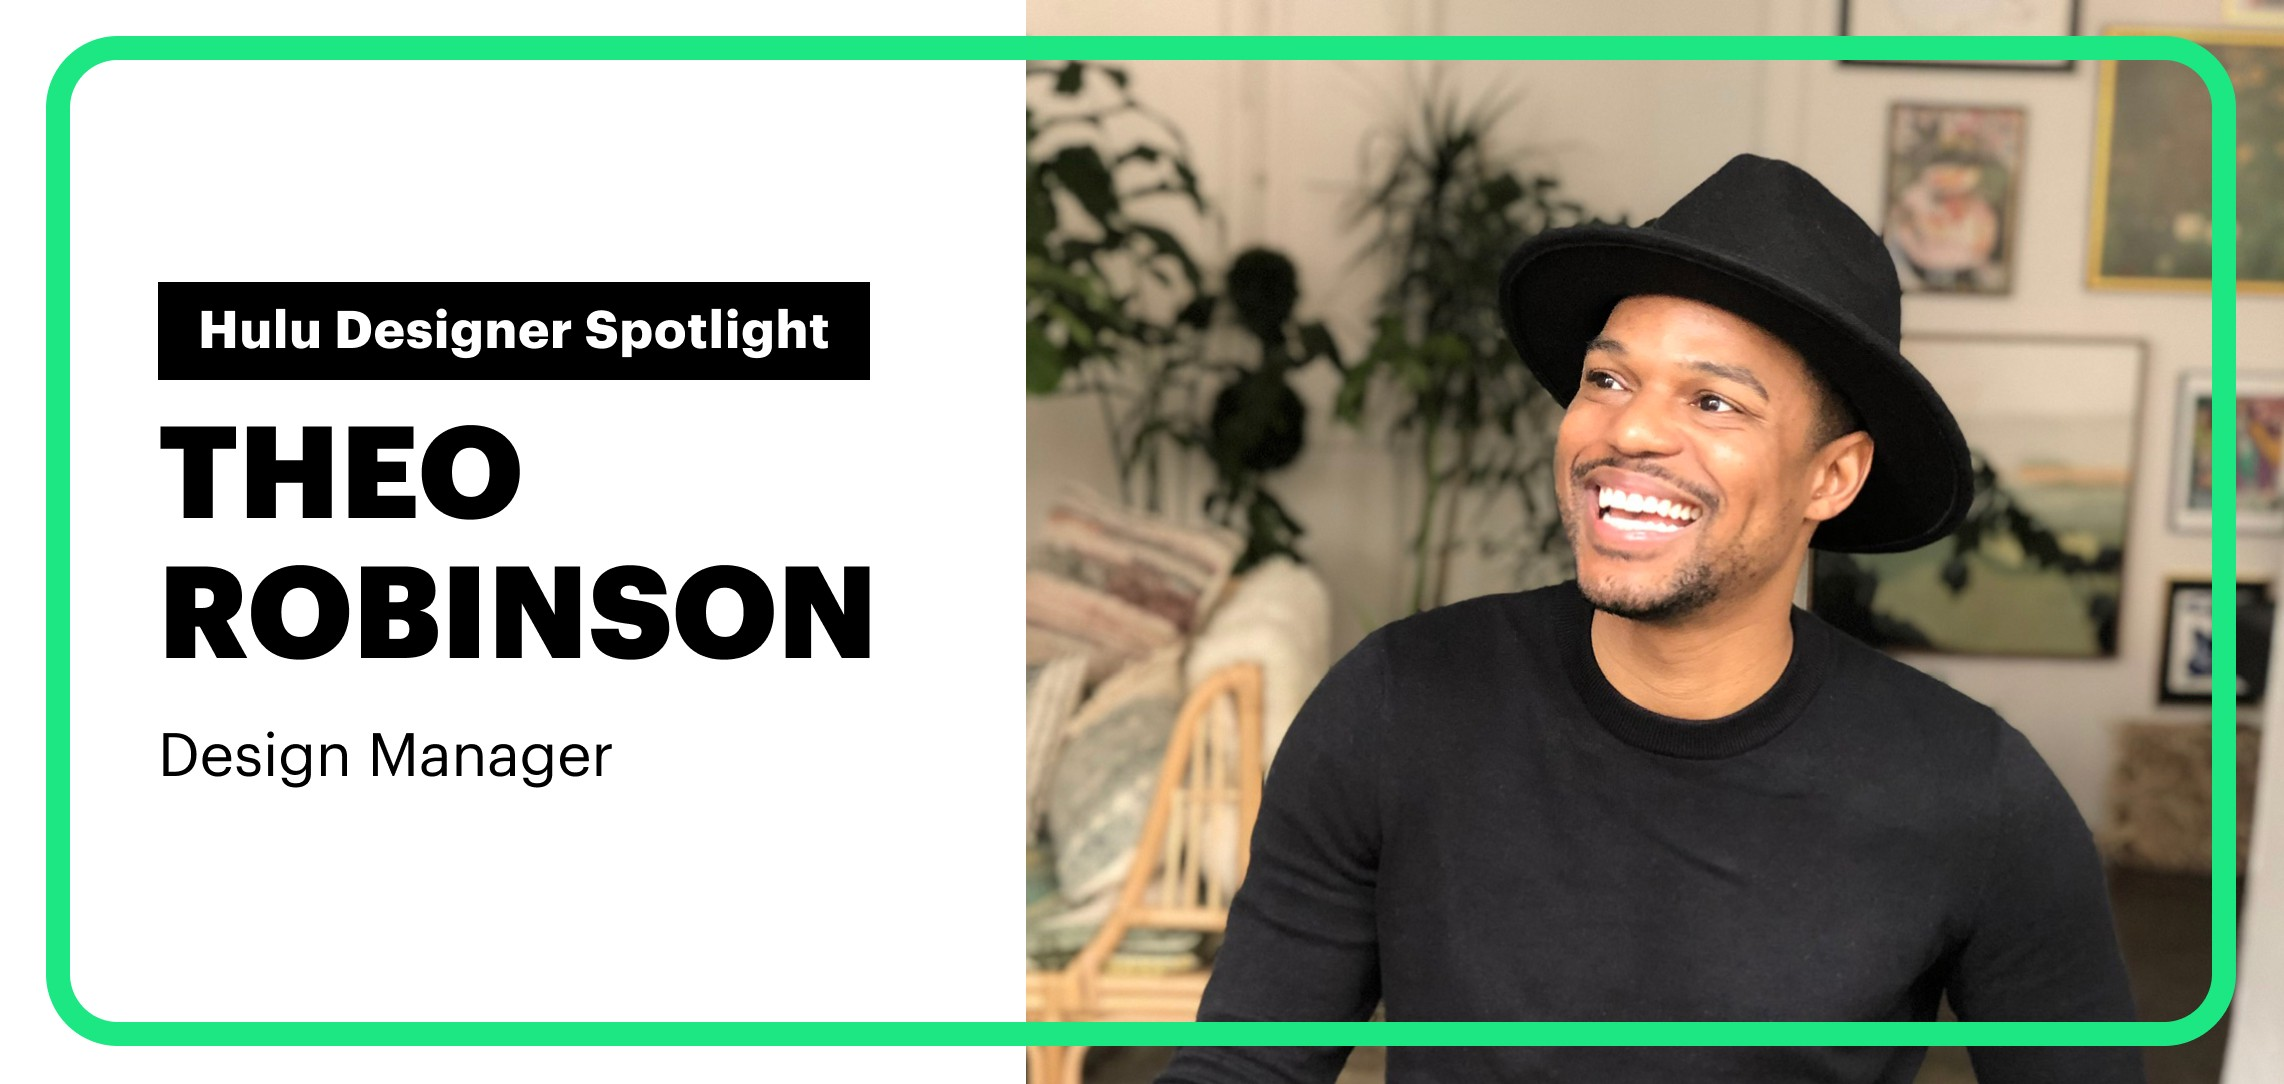 Hulu designer spotlight feature on design manager, Theo Robinson. Man with hat, sitting and smiling off into the distance.